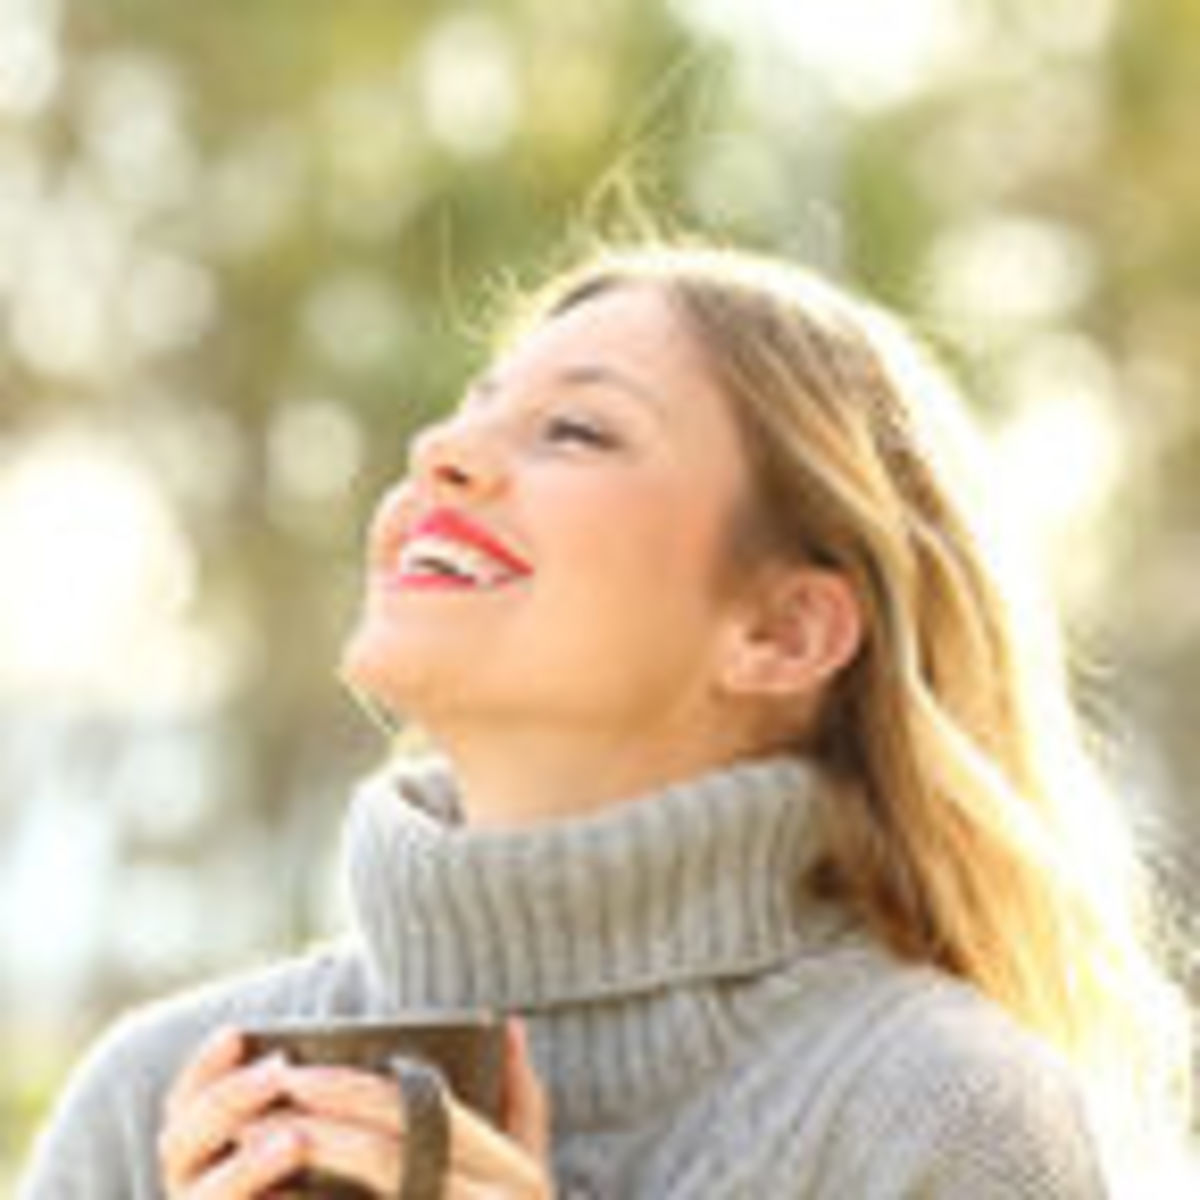 7 Scientifically Proven Benefits of Gratitude | Psychology Today